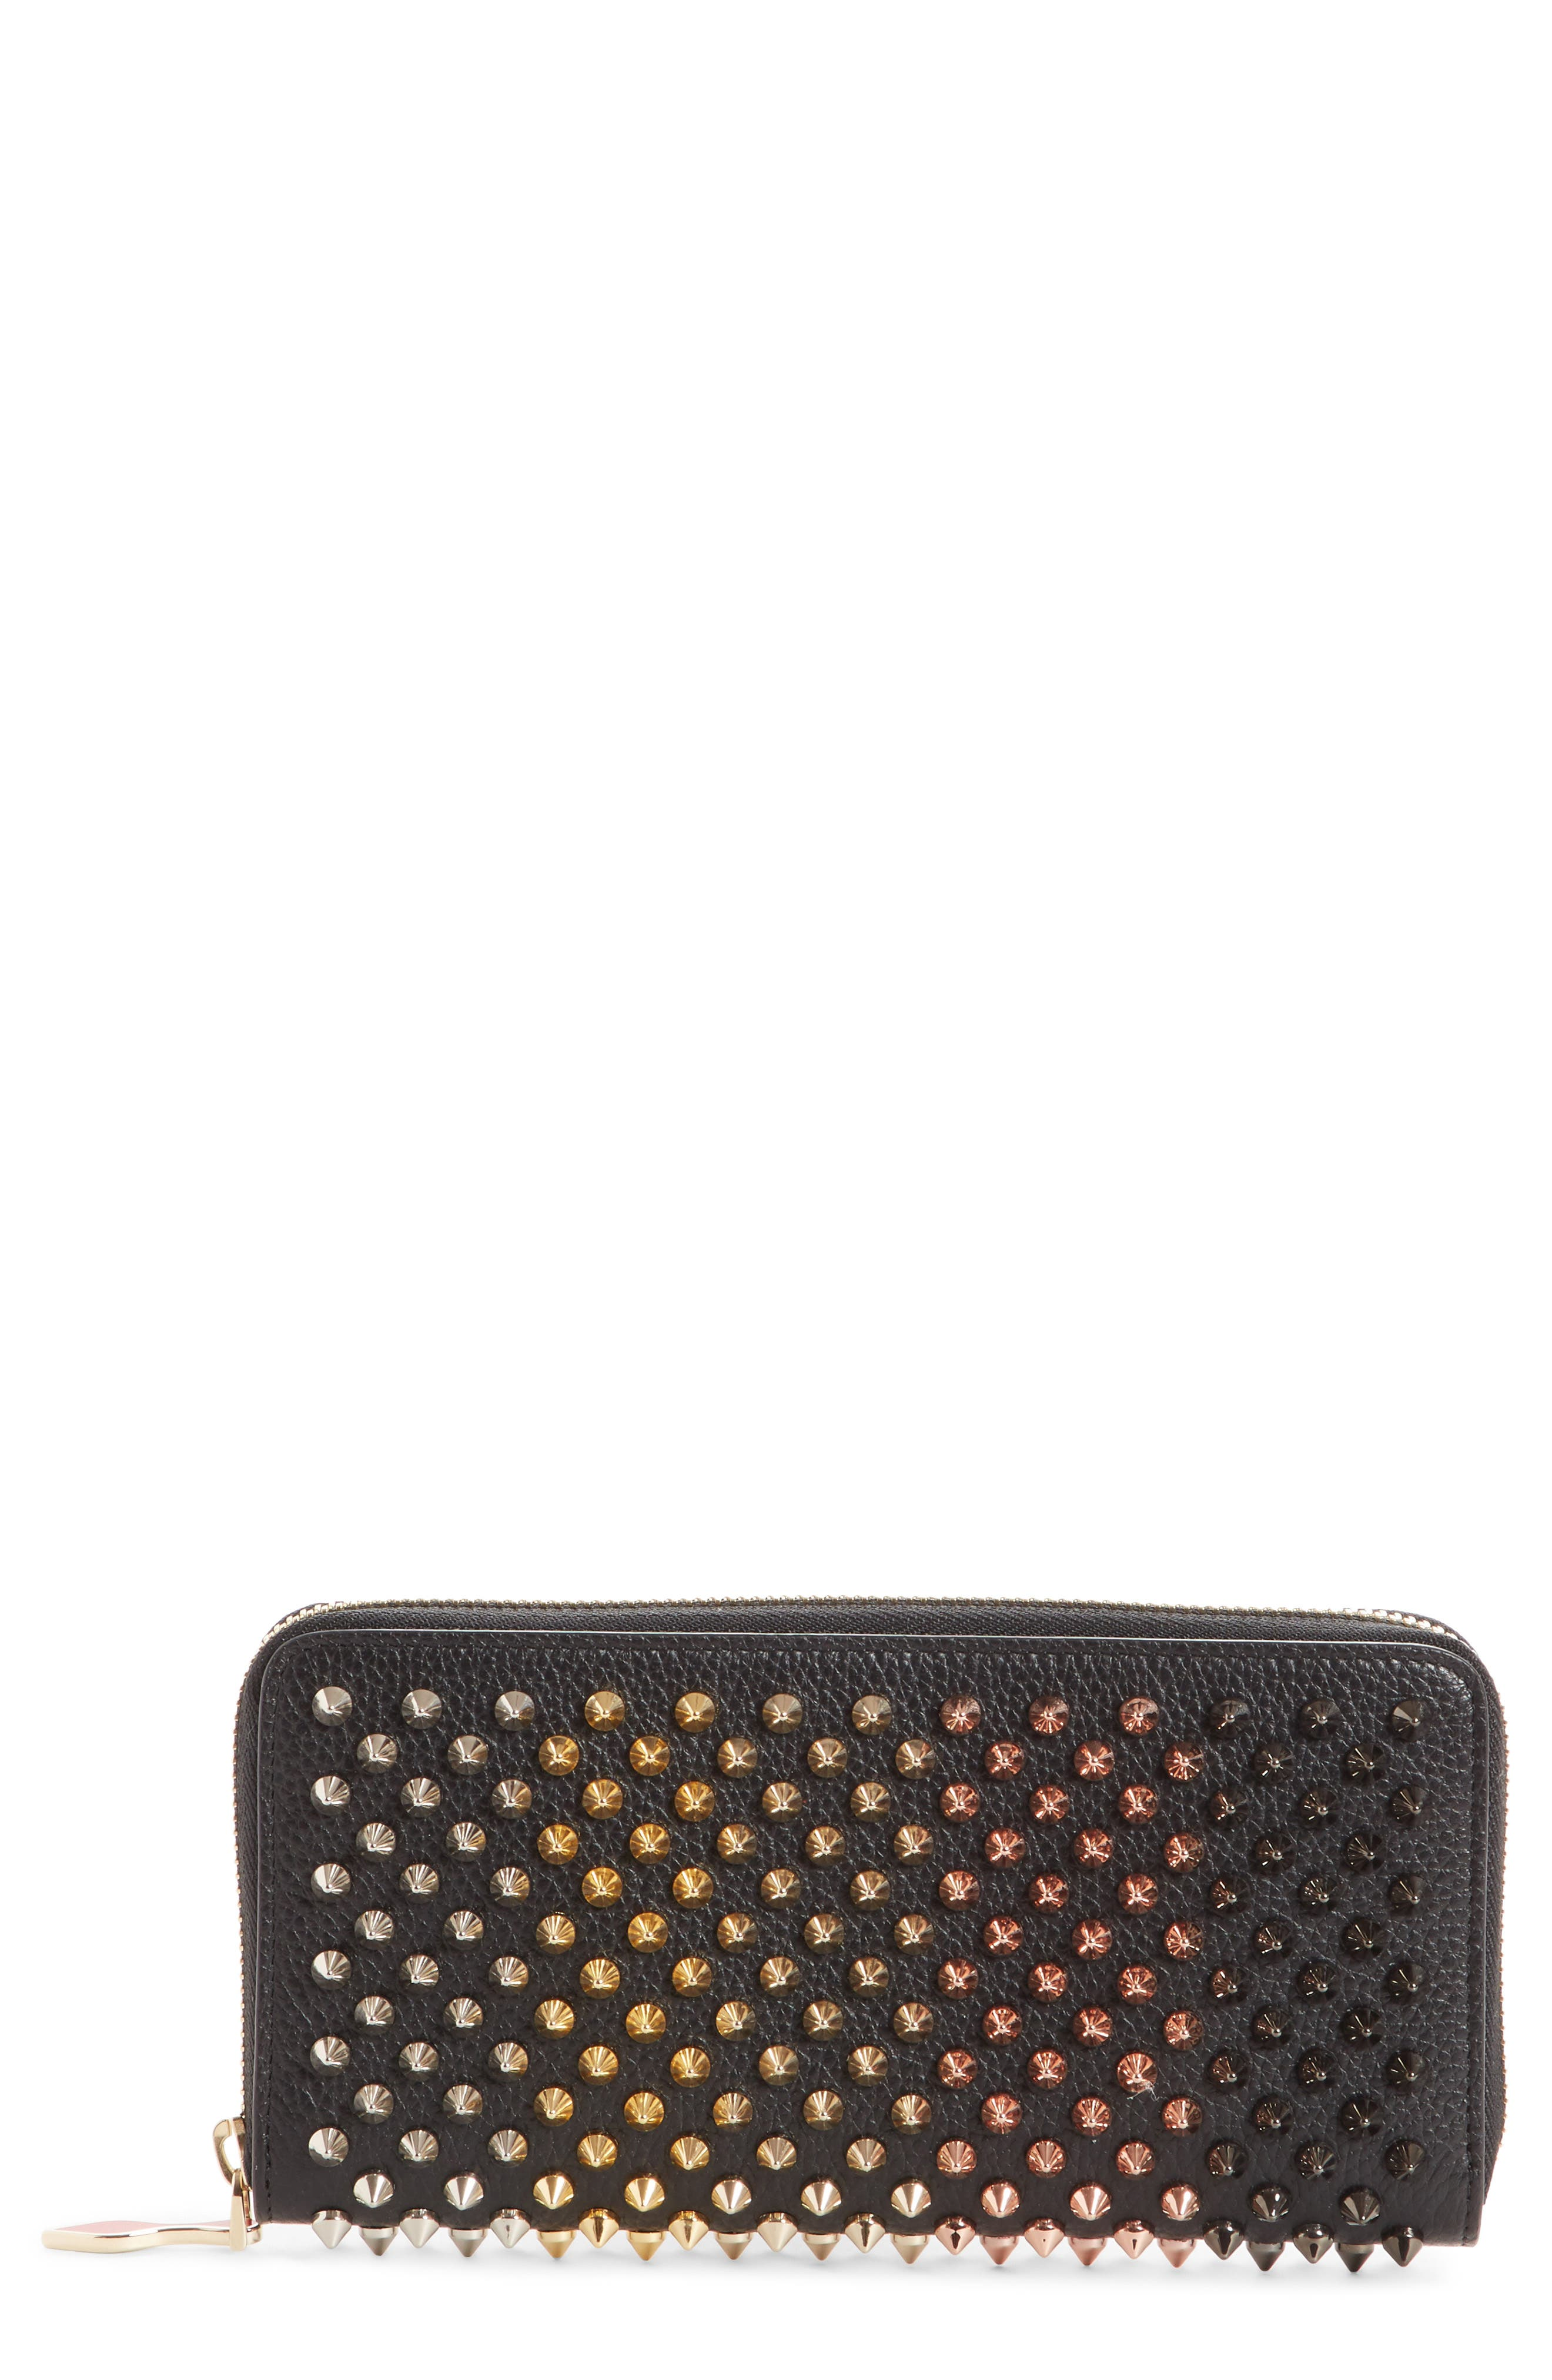 Panettone Spiked Leather Wallet,                         Main,                         color, BLACK/ MULTIMETAL